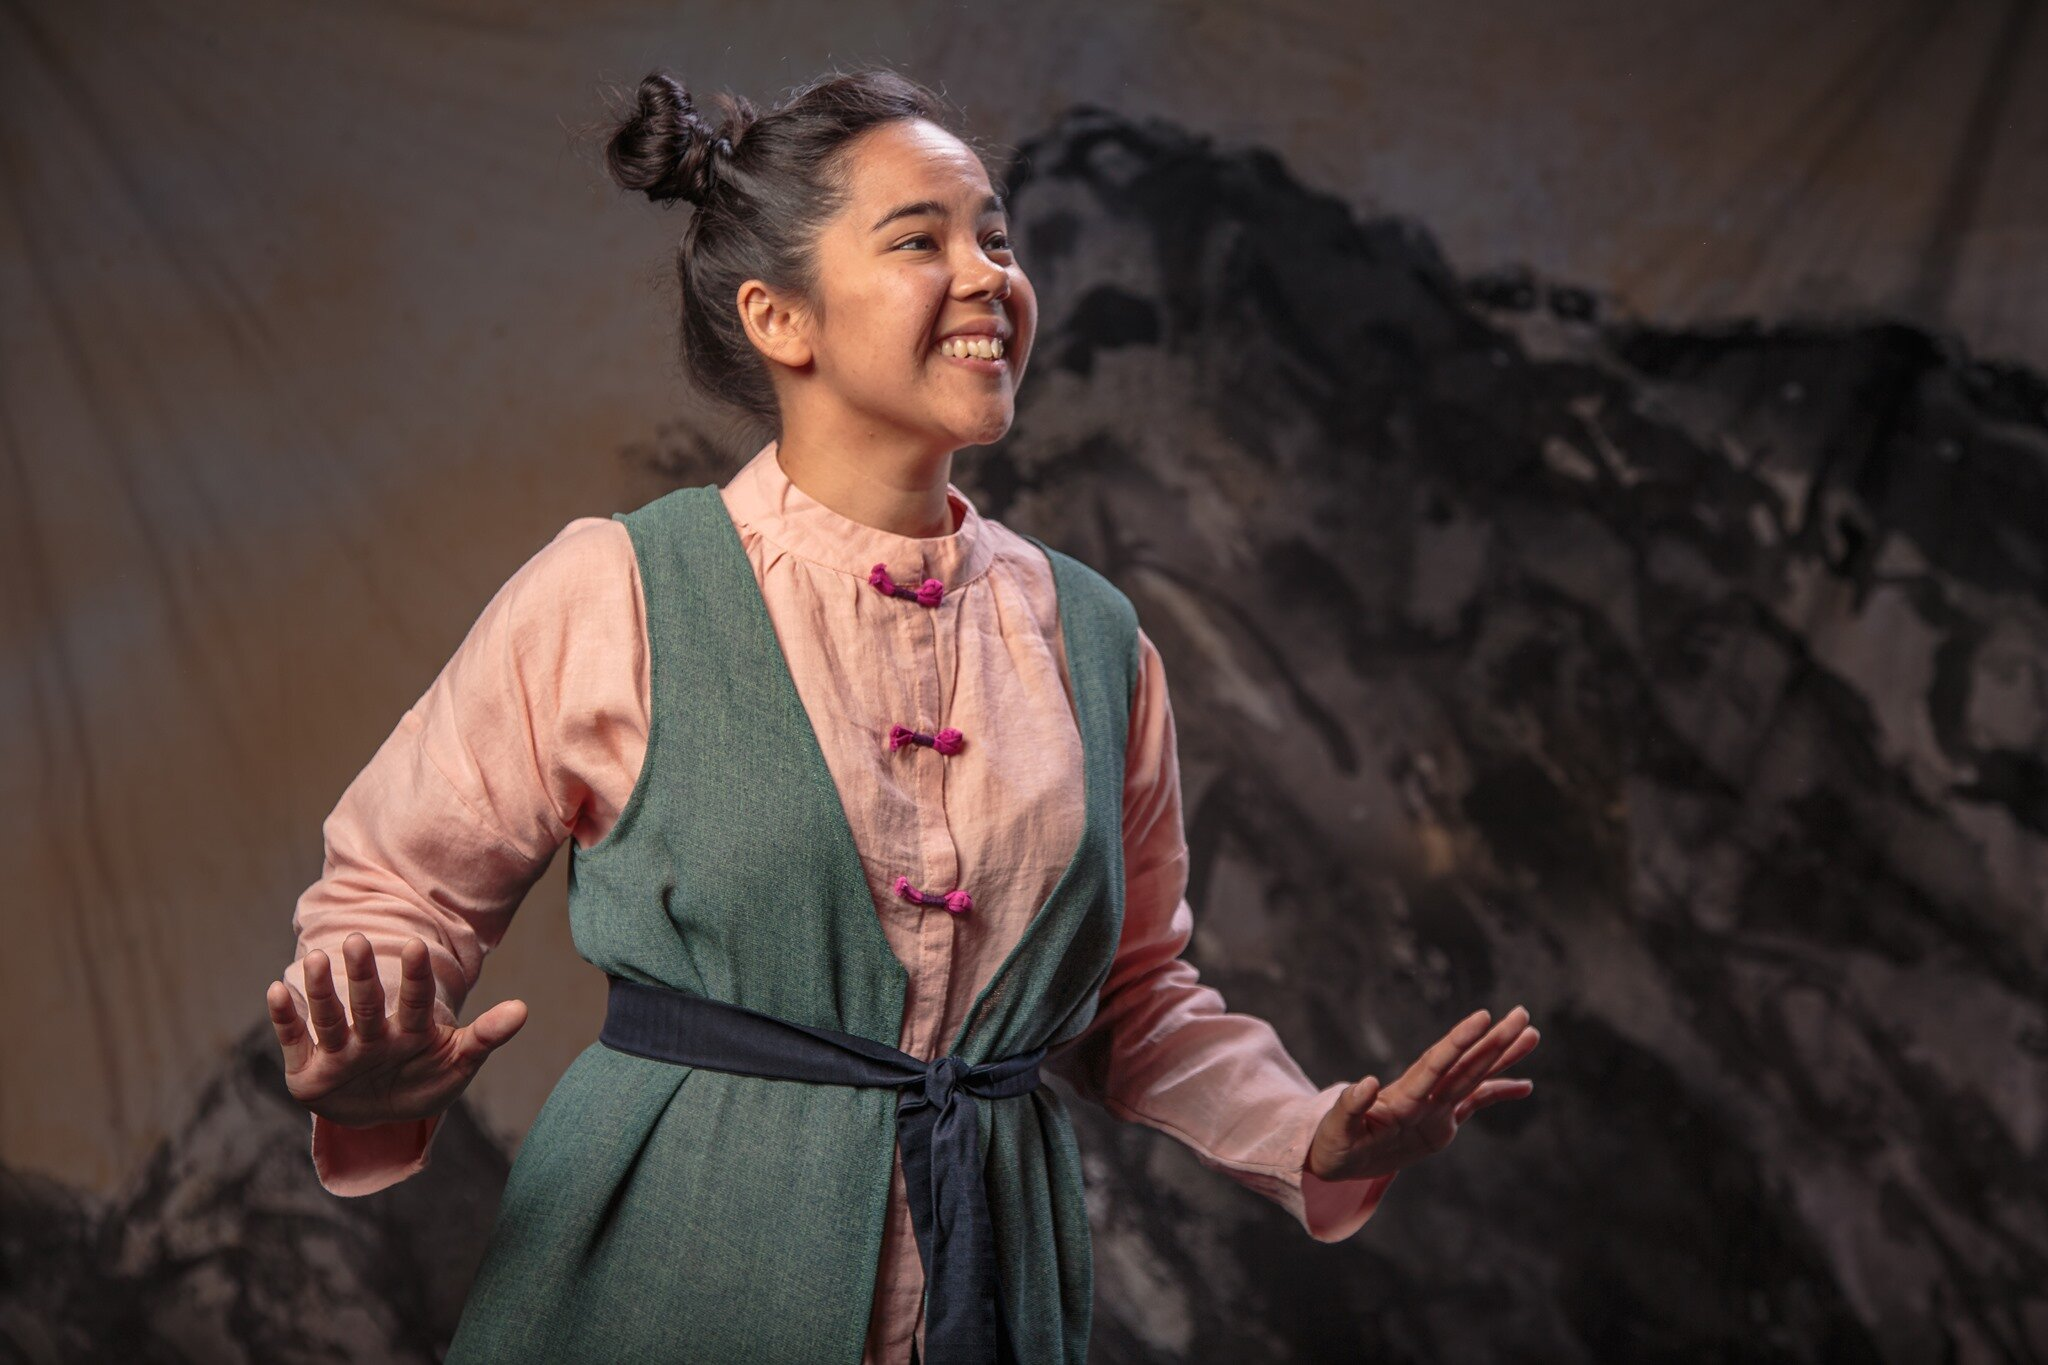 Chelsea Wellott as Minli in the 2019 BACT Production. Photo by Roger Jones.